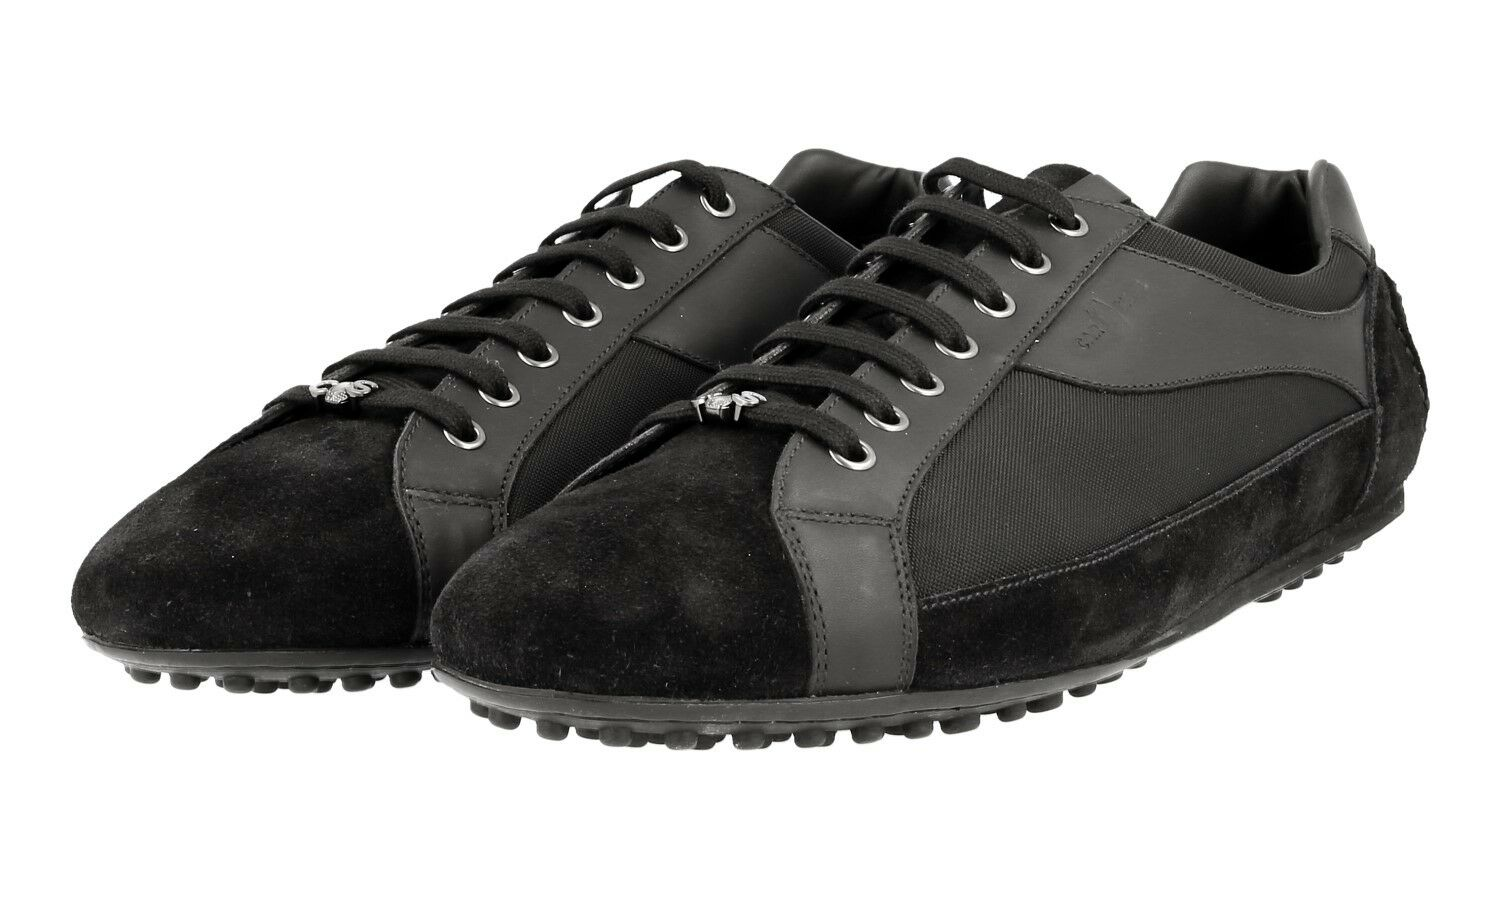 AUTH CAR SHOE BY PRADA SNEAKERS SHOES KUE744 BLACK NEW US 10